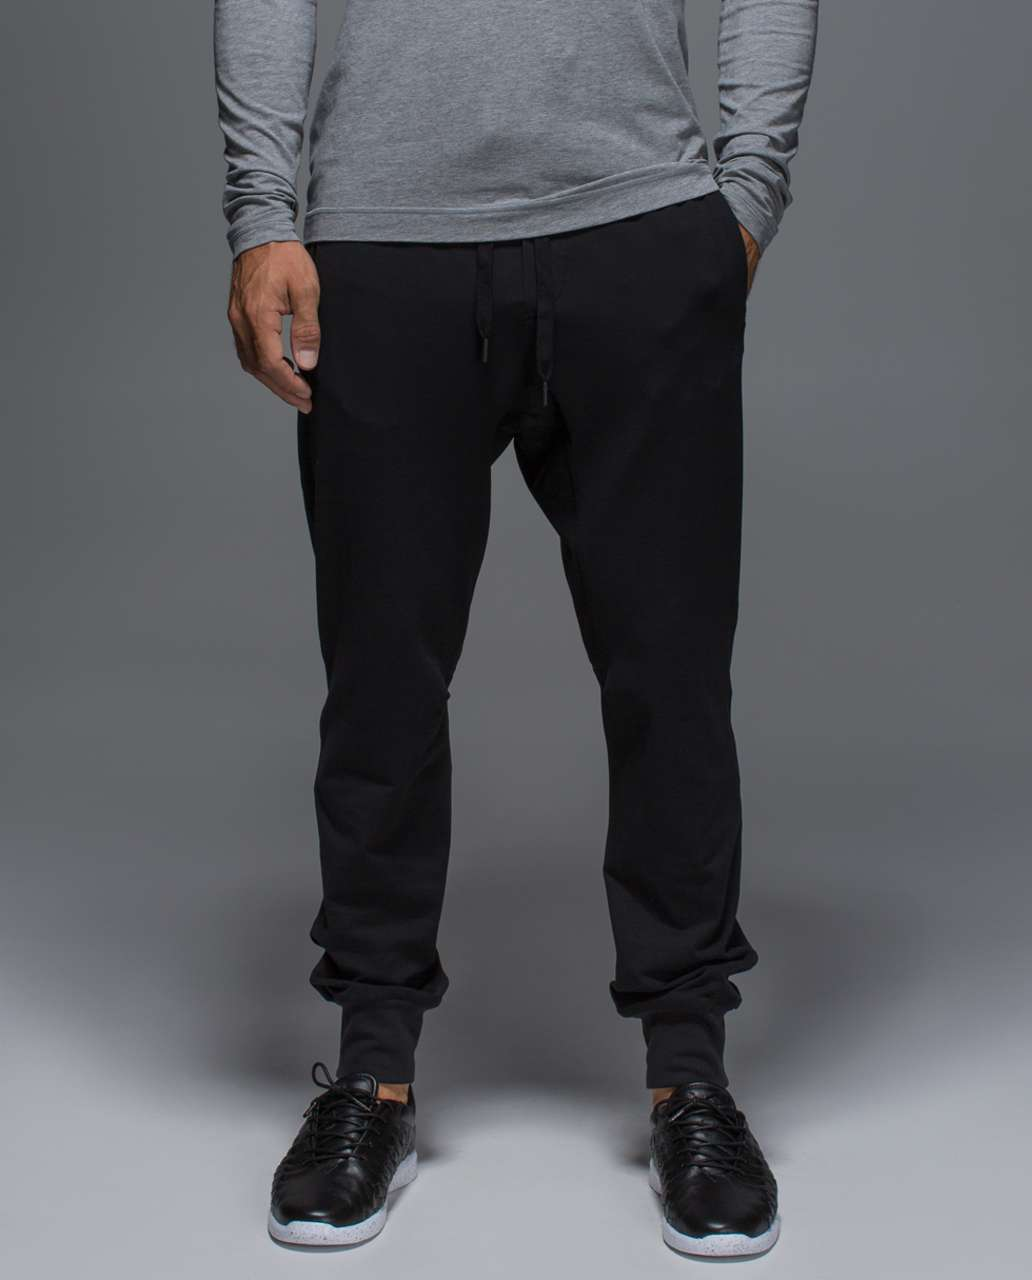 9663f311a6 Lululemon Anti-Gravity Pant - Black (Second Release) - lulu fanatics